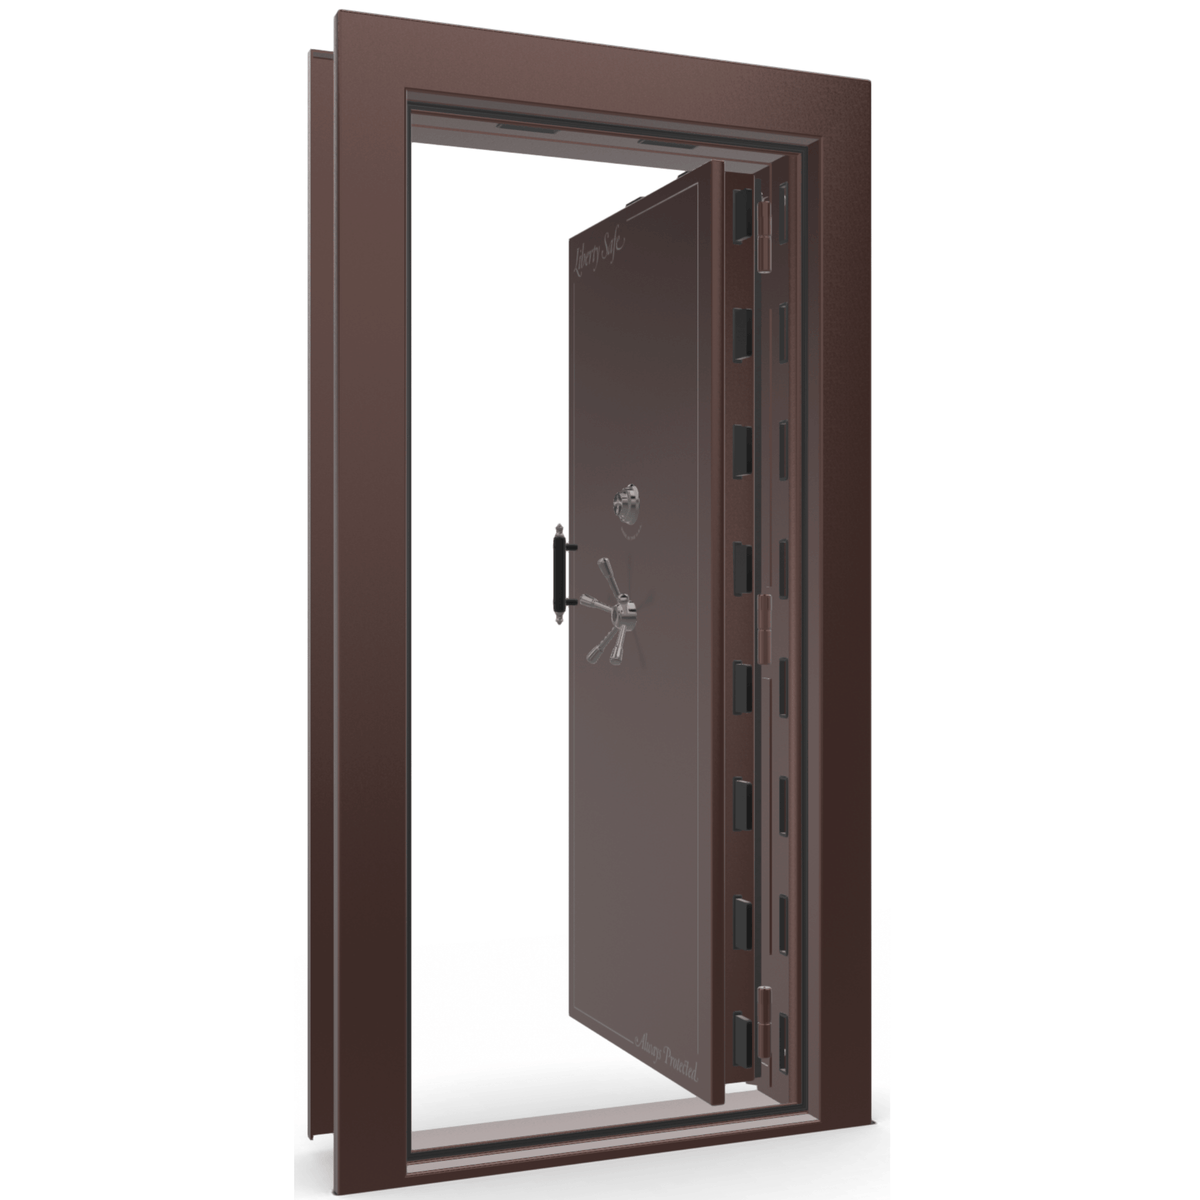 "Vault Door Right Inswing | Burgundy | Black Mechanical Lock | 81-85""(H) x 27-42""(W) x 7-10""(D)"